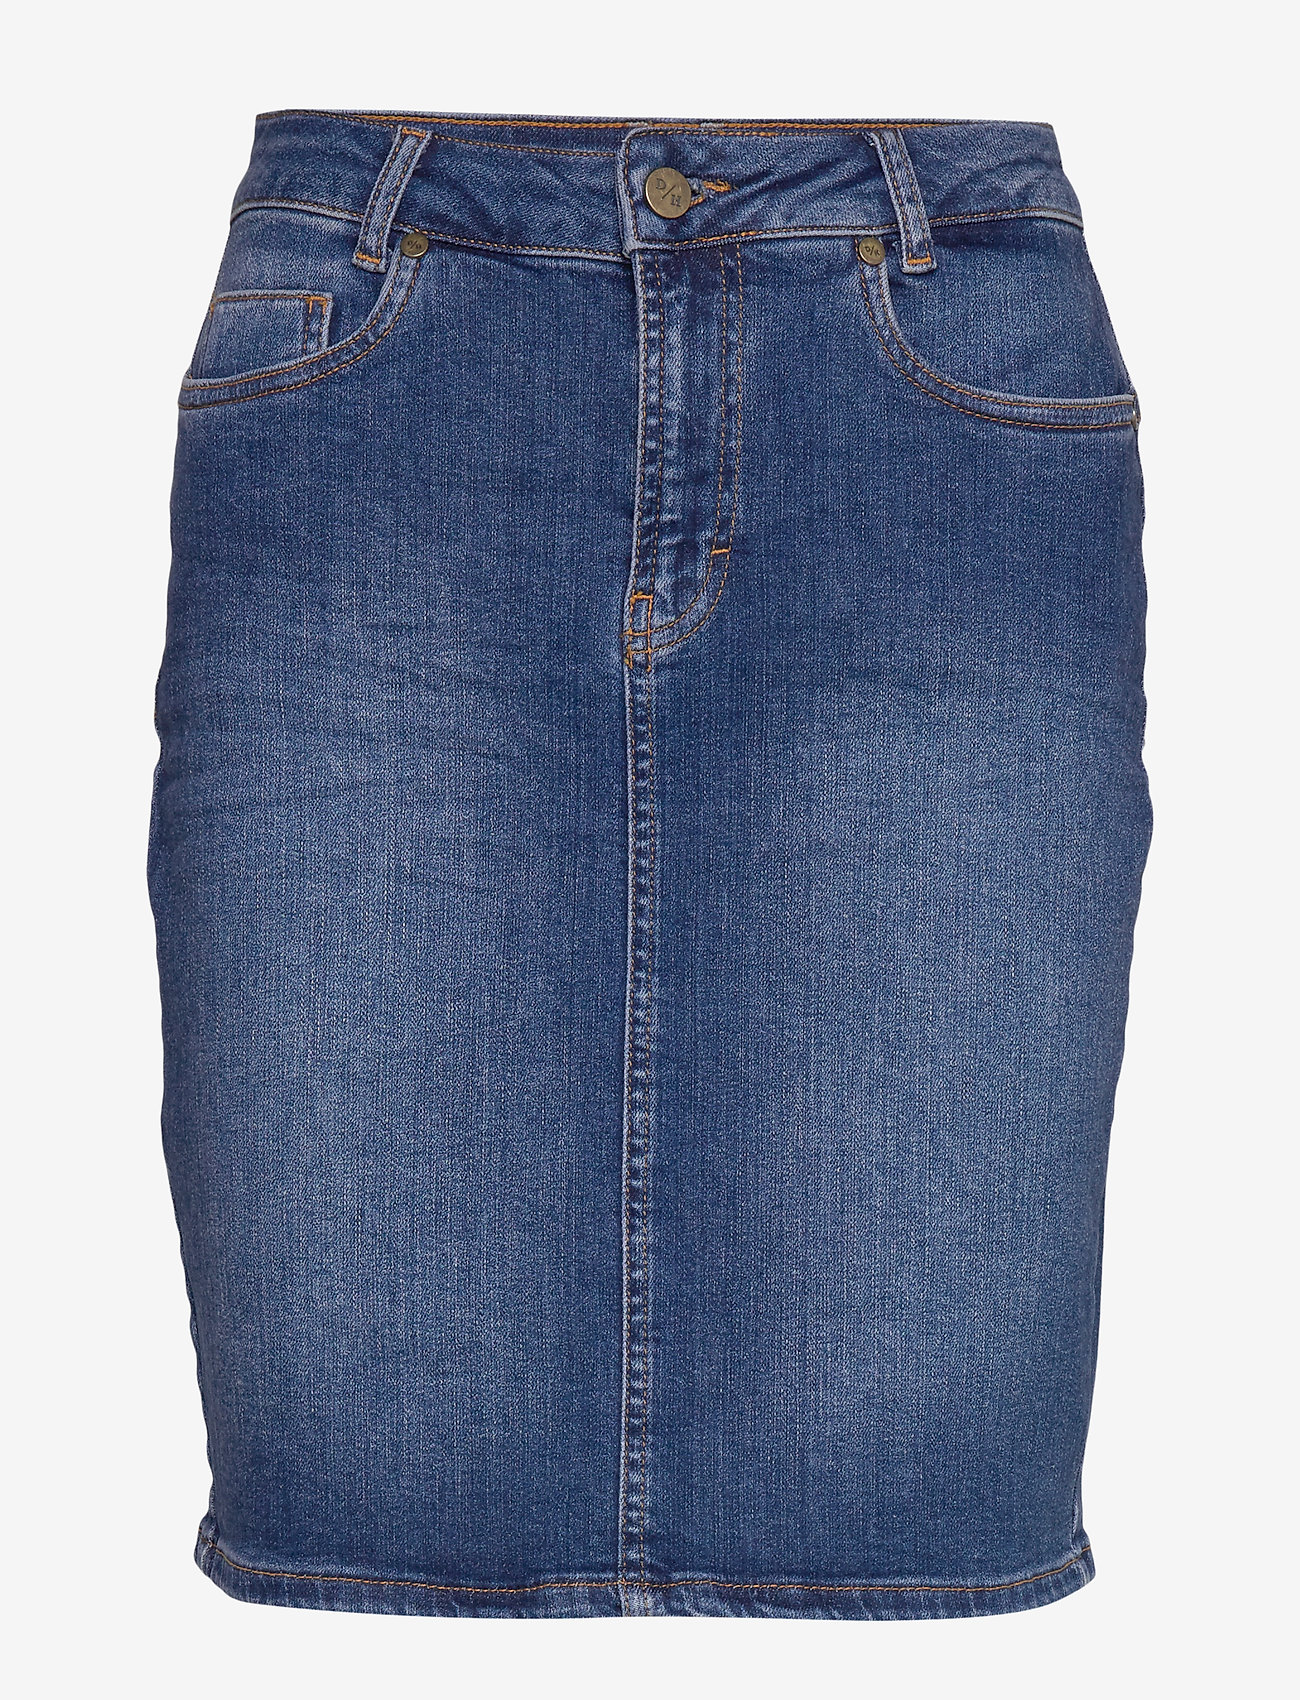 Denim Hunter - 12 THE DENIM SKIRT - jeanskjolar - medium blue wash - 0